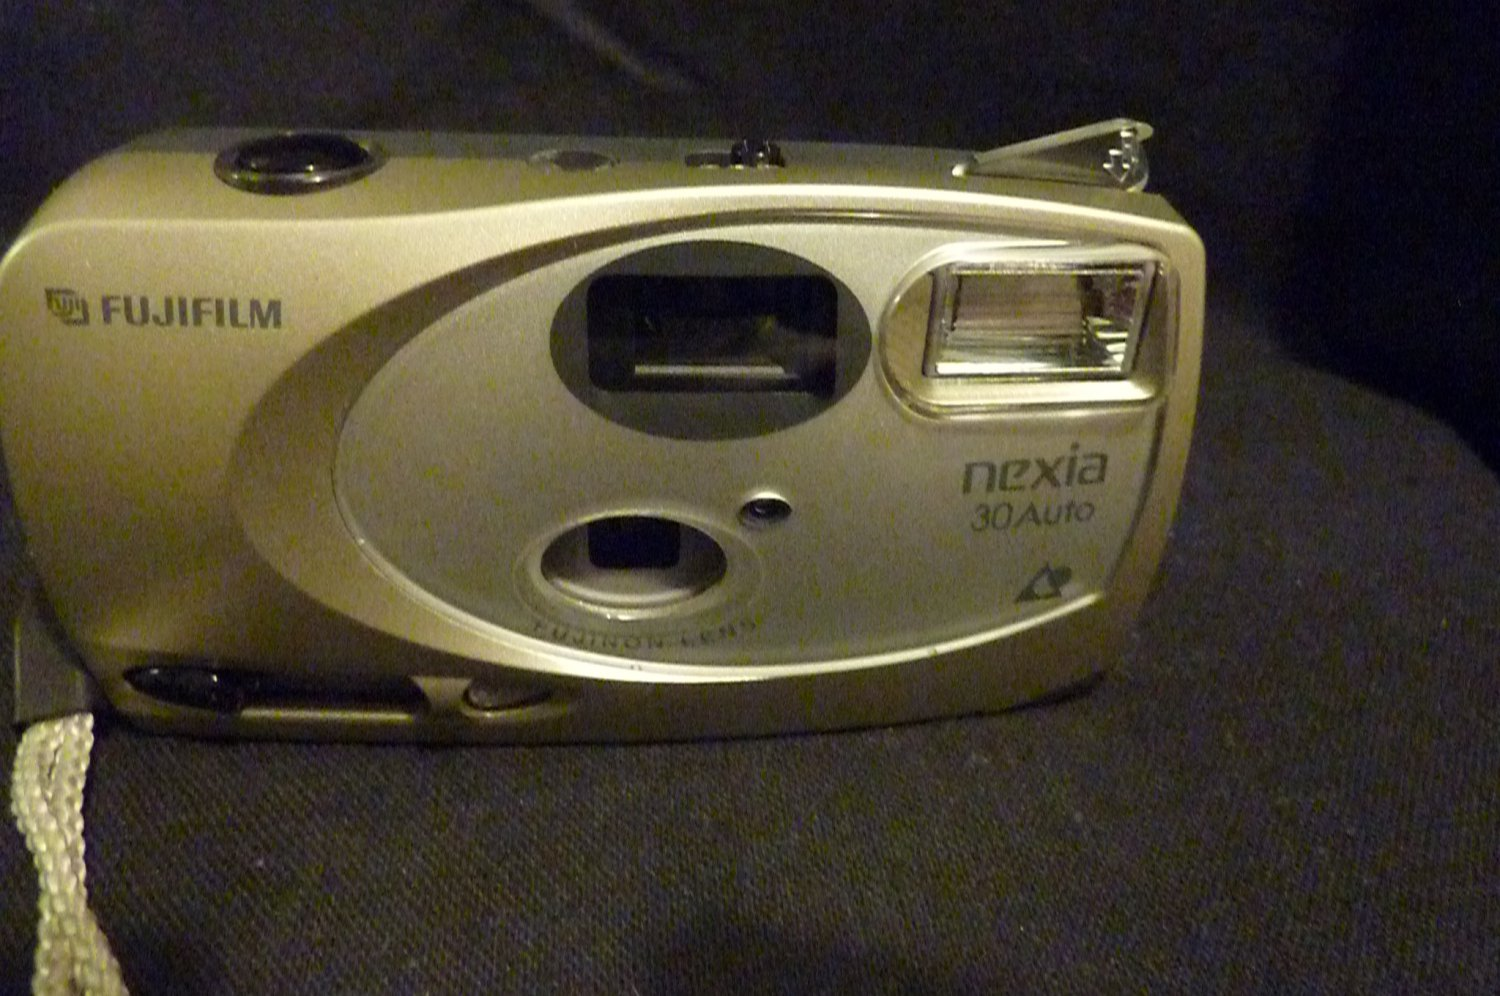 Fujifilm Nexia 30 Auto Film Camera with Case